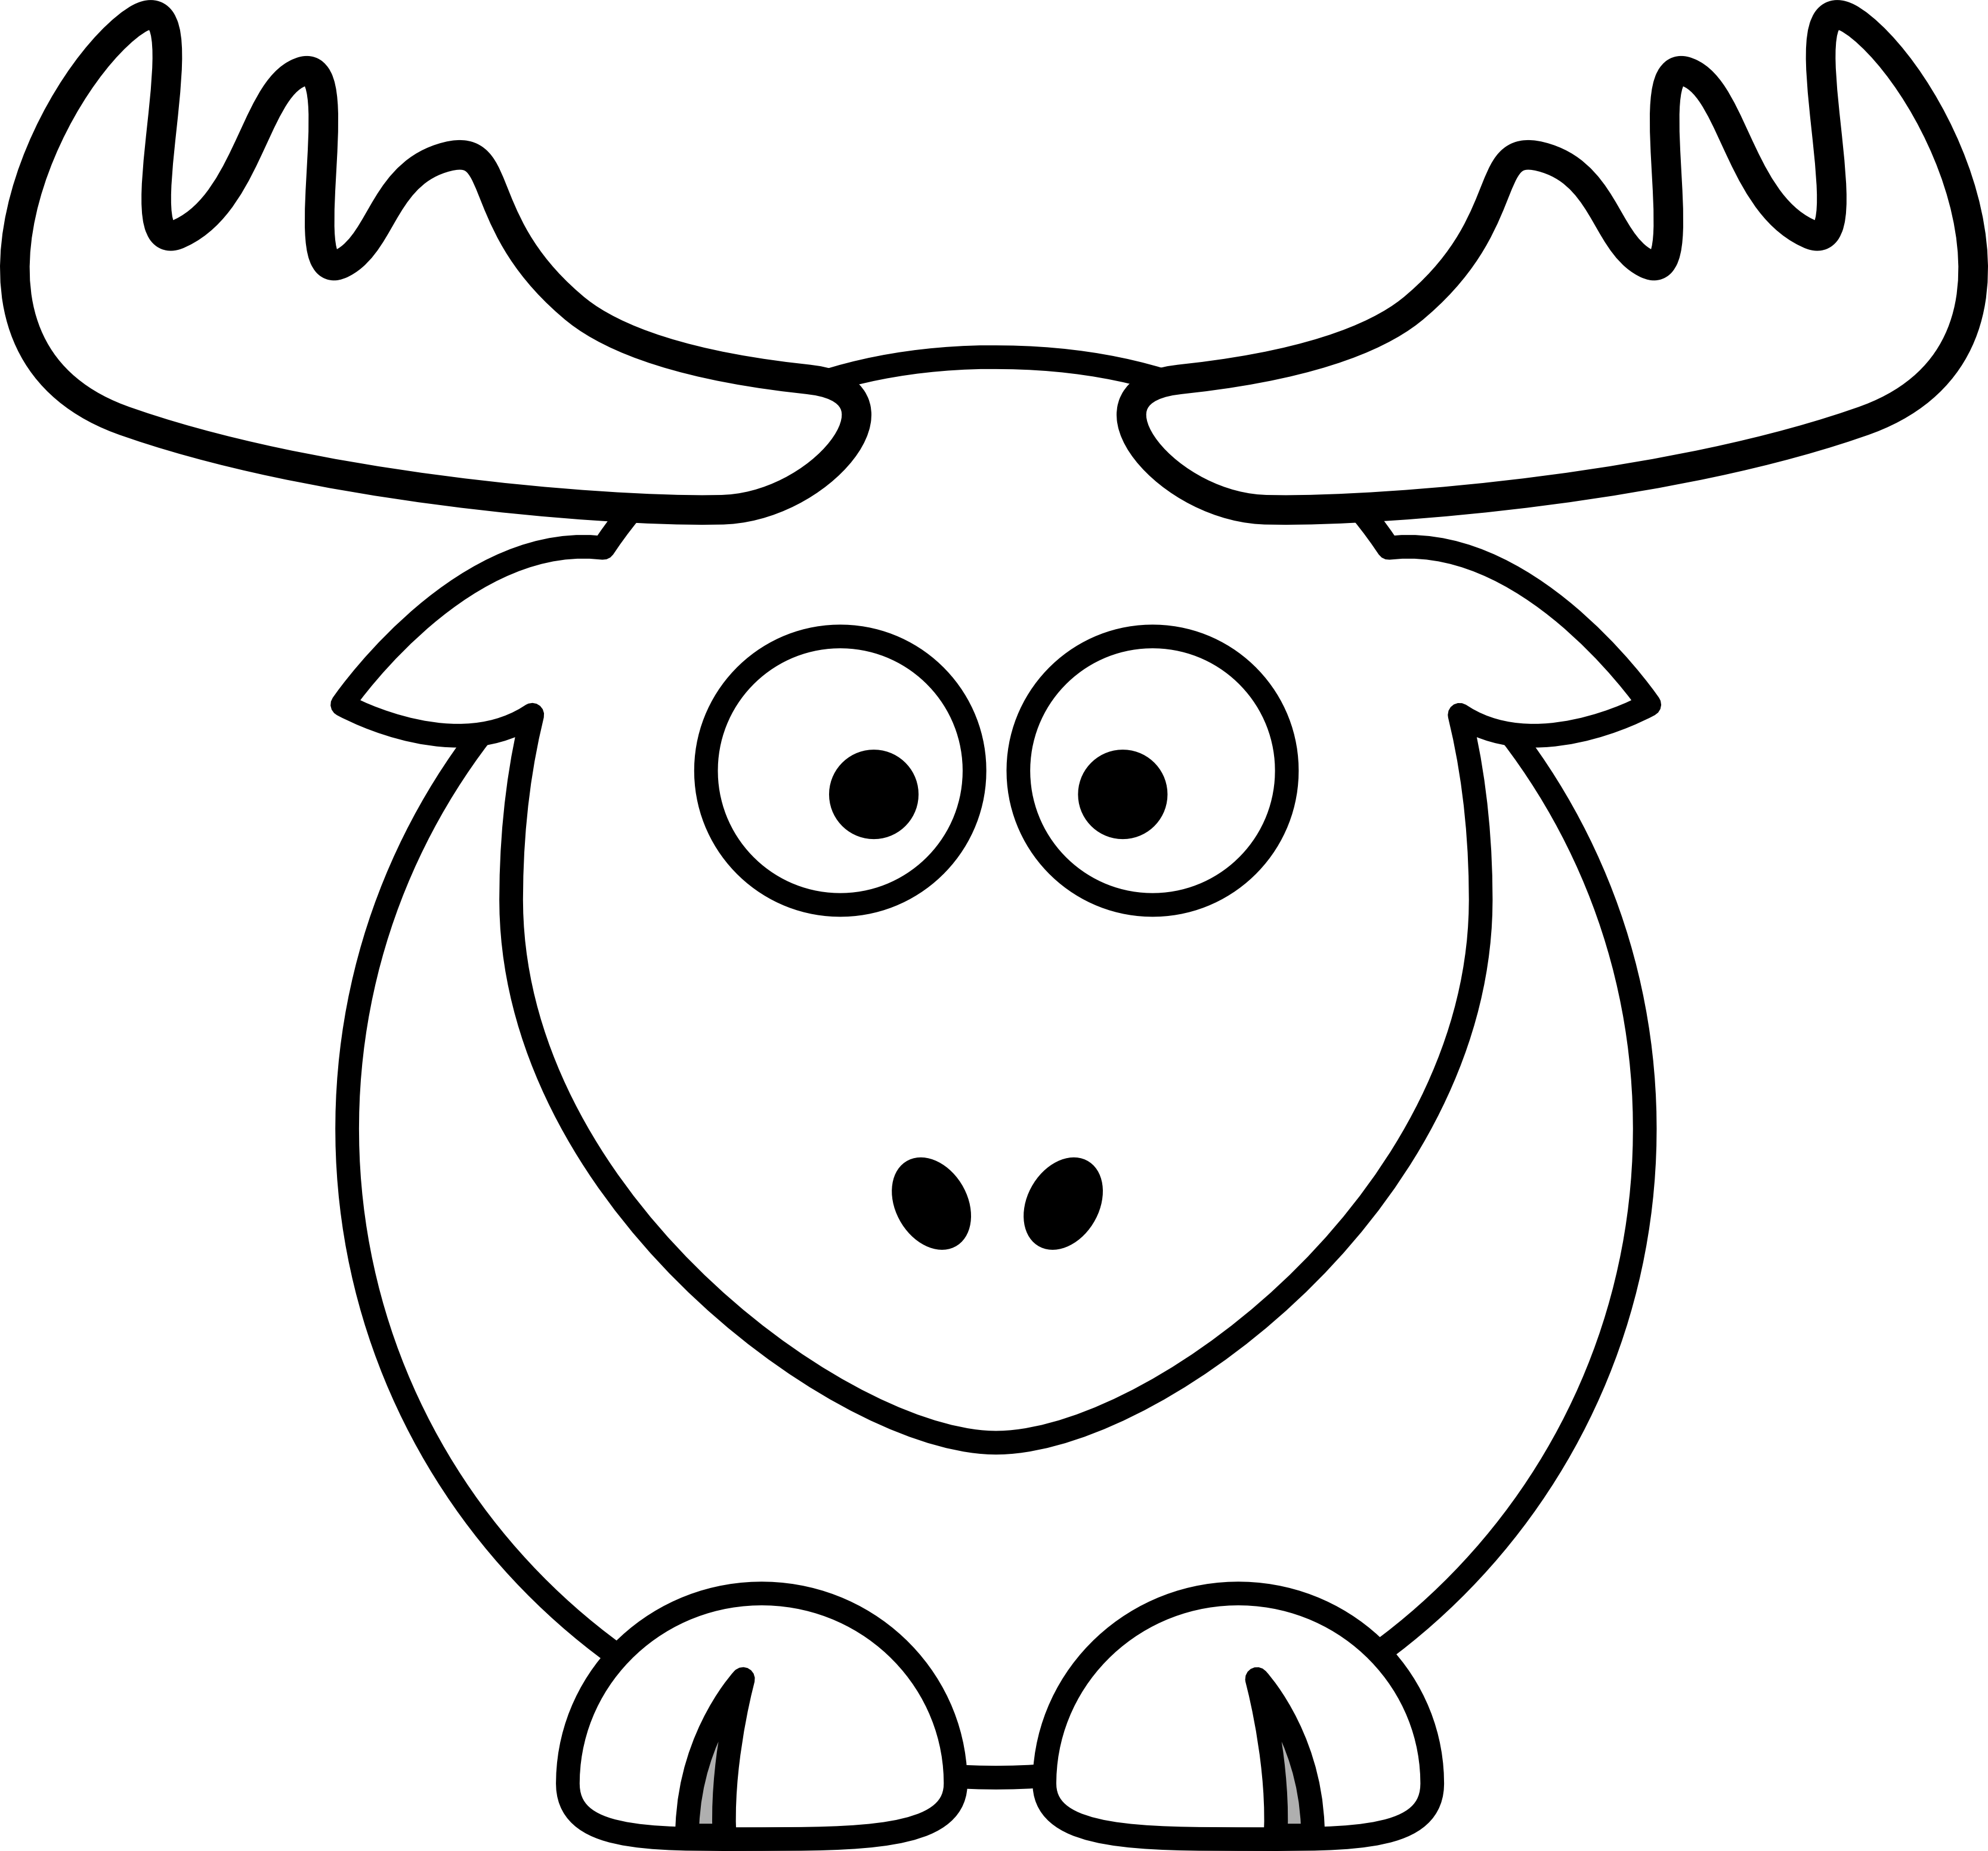 Reindeer face clipart black and white graphic free Reindeer Clipart Black And White - Clip Art Library graphic free